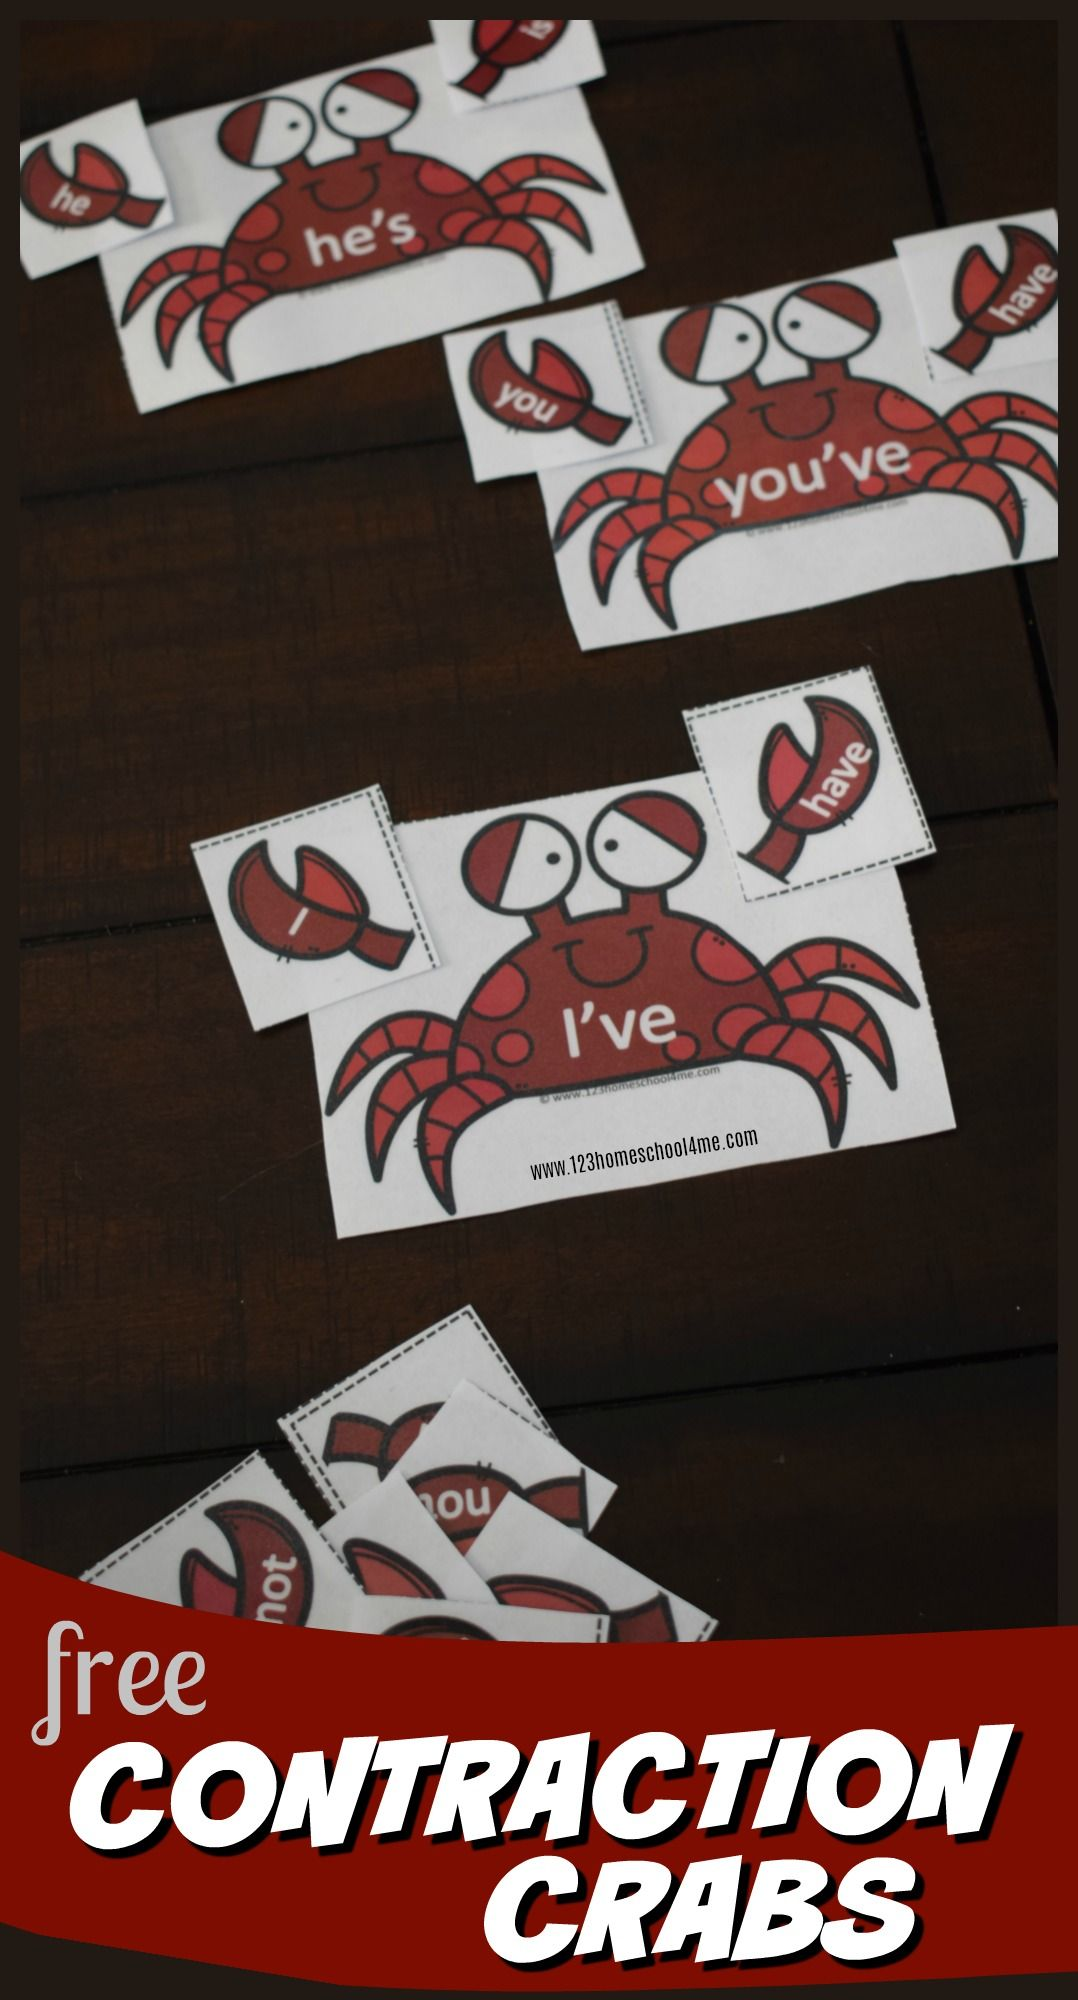 Free Crab Contractions